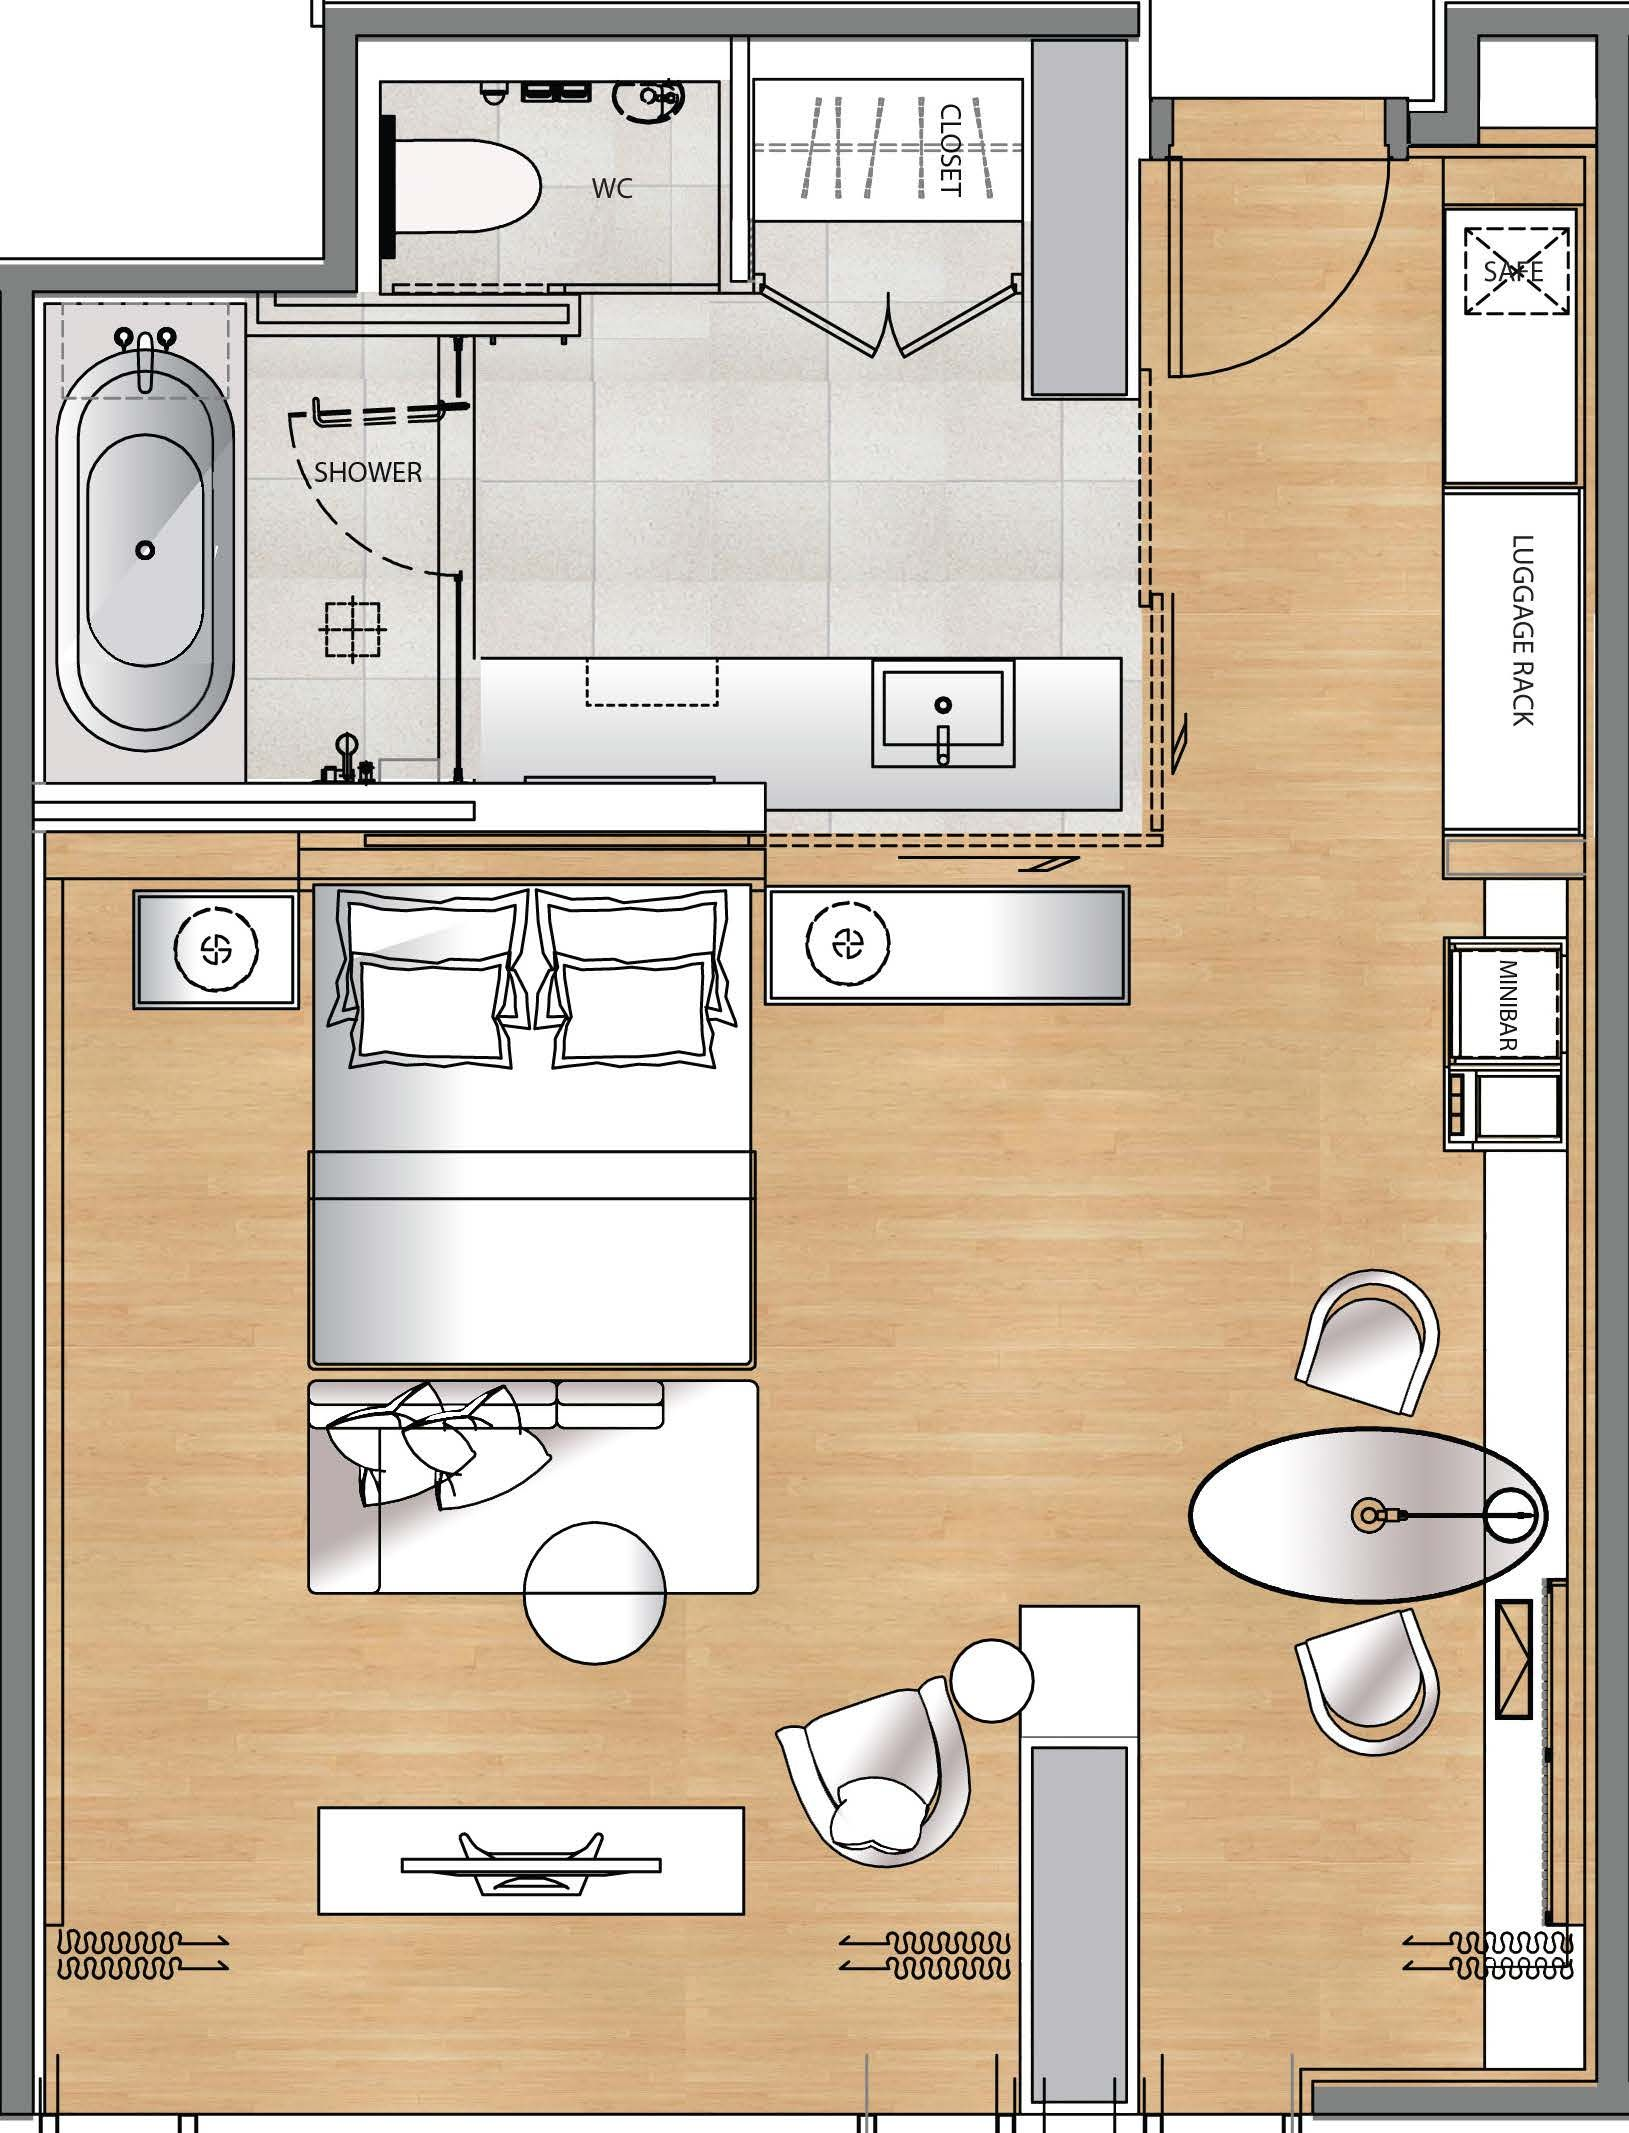 hotel gym floor plan google search hotel rooms pinterest gym google search and google